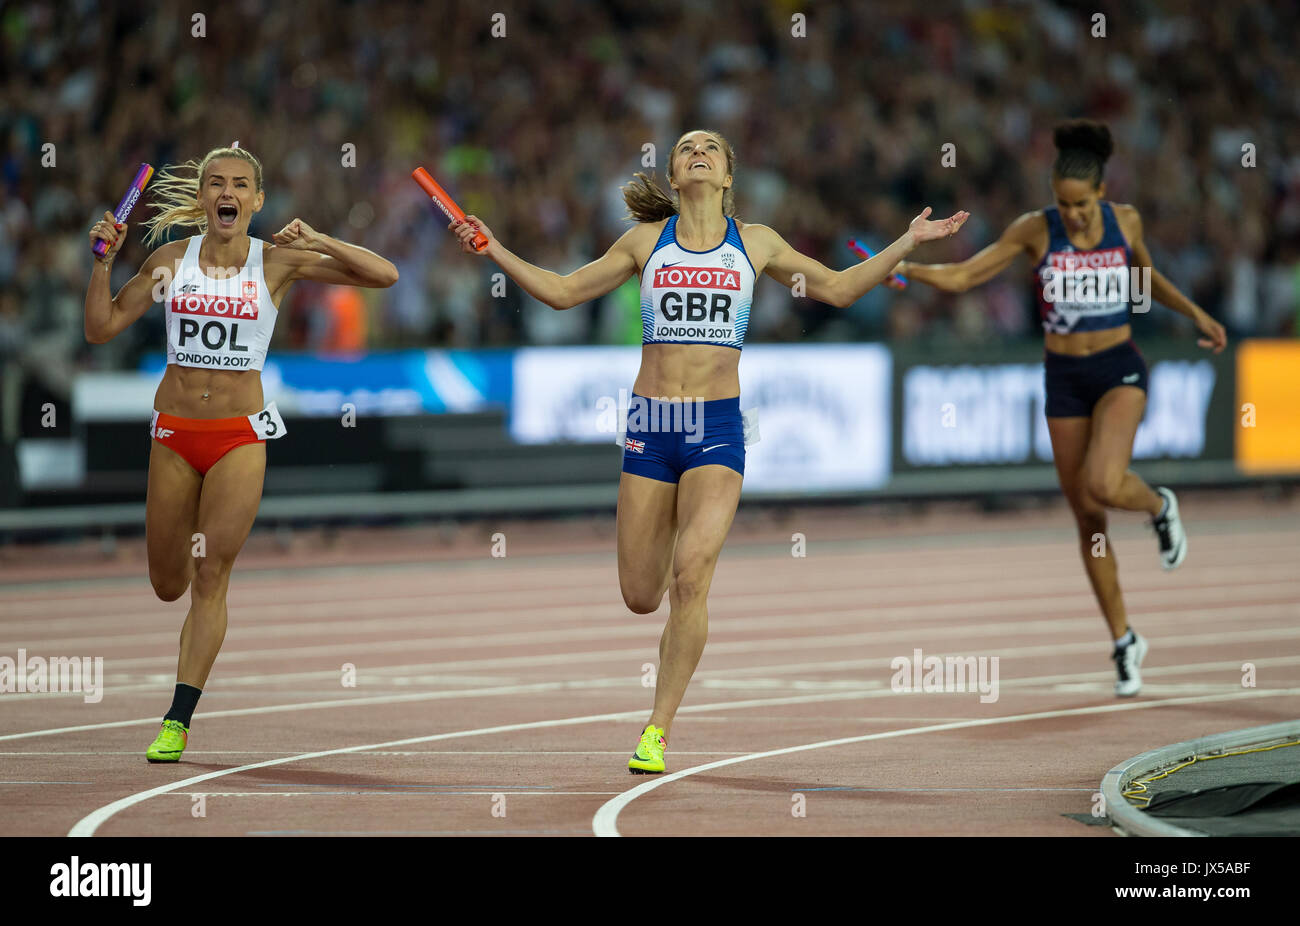 London, UK. 13th Aug, 2017. during the Final Day of the IAAF World Athletics Championships (Day 10) at the Olympic Stock Photo